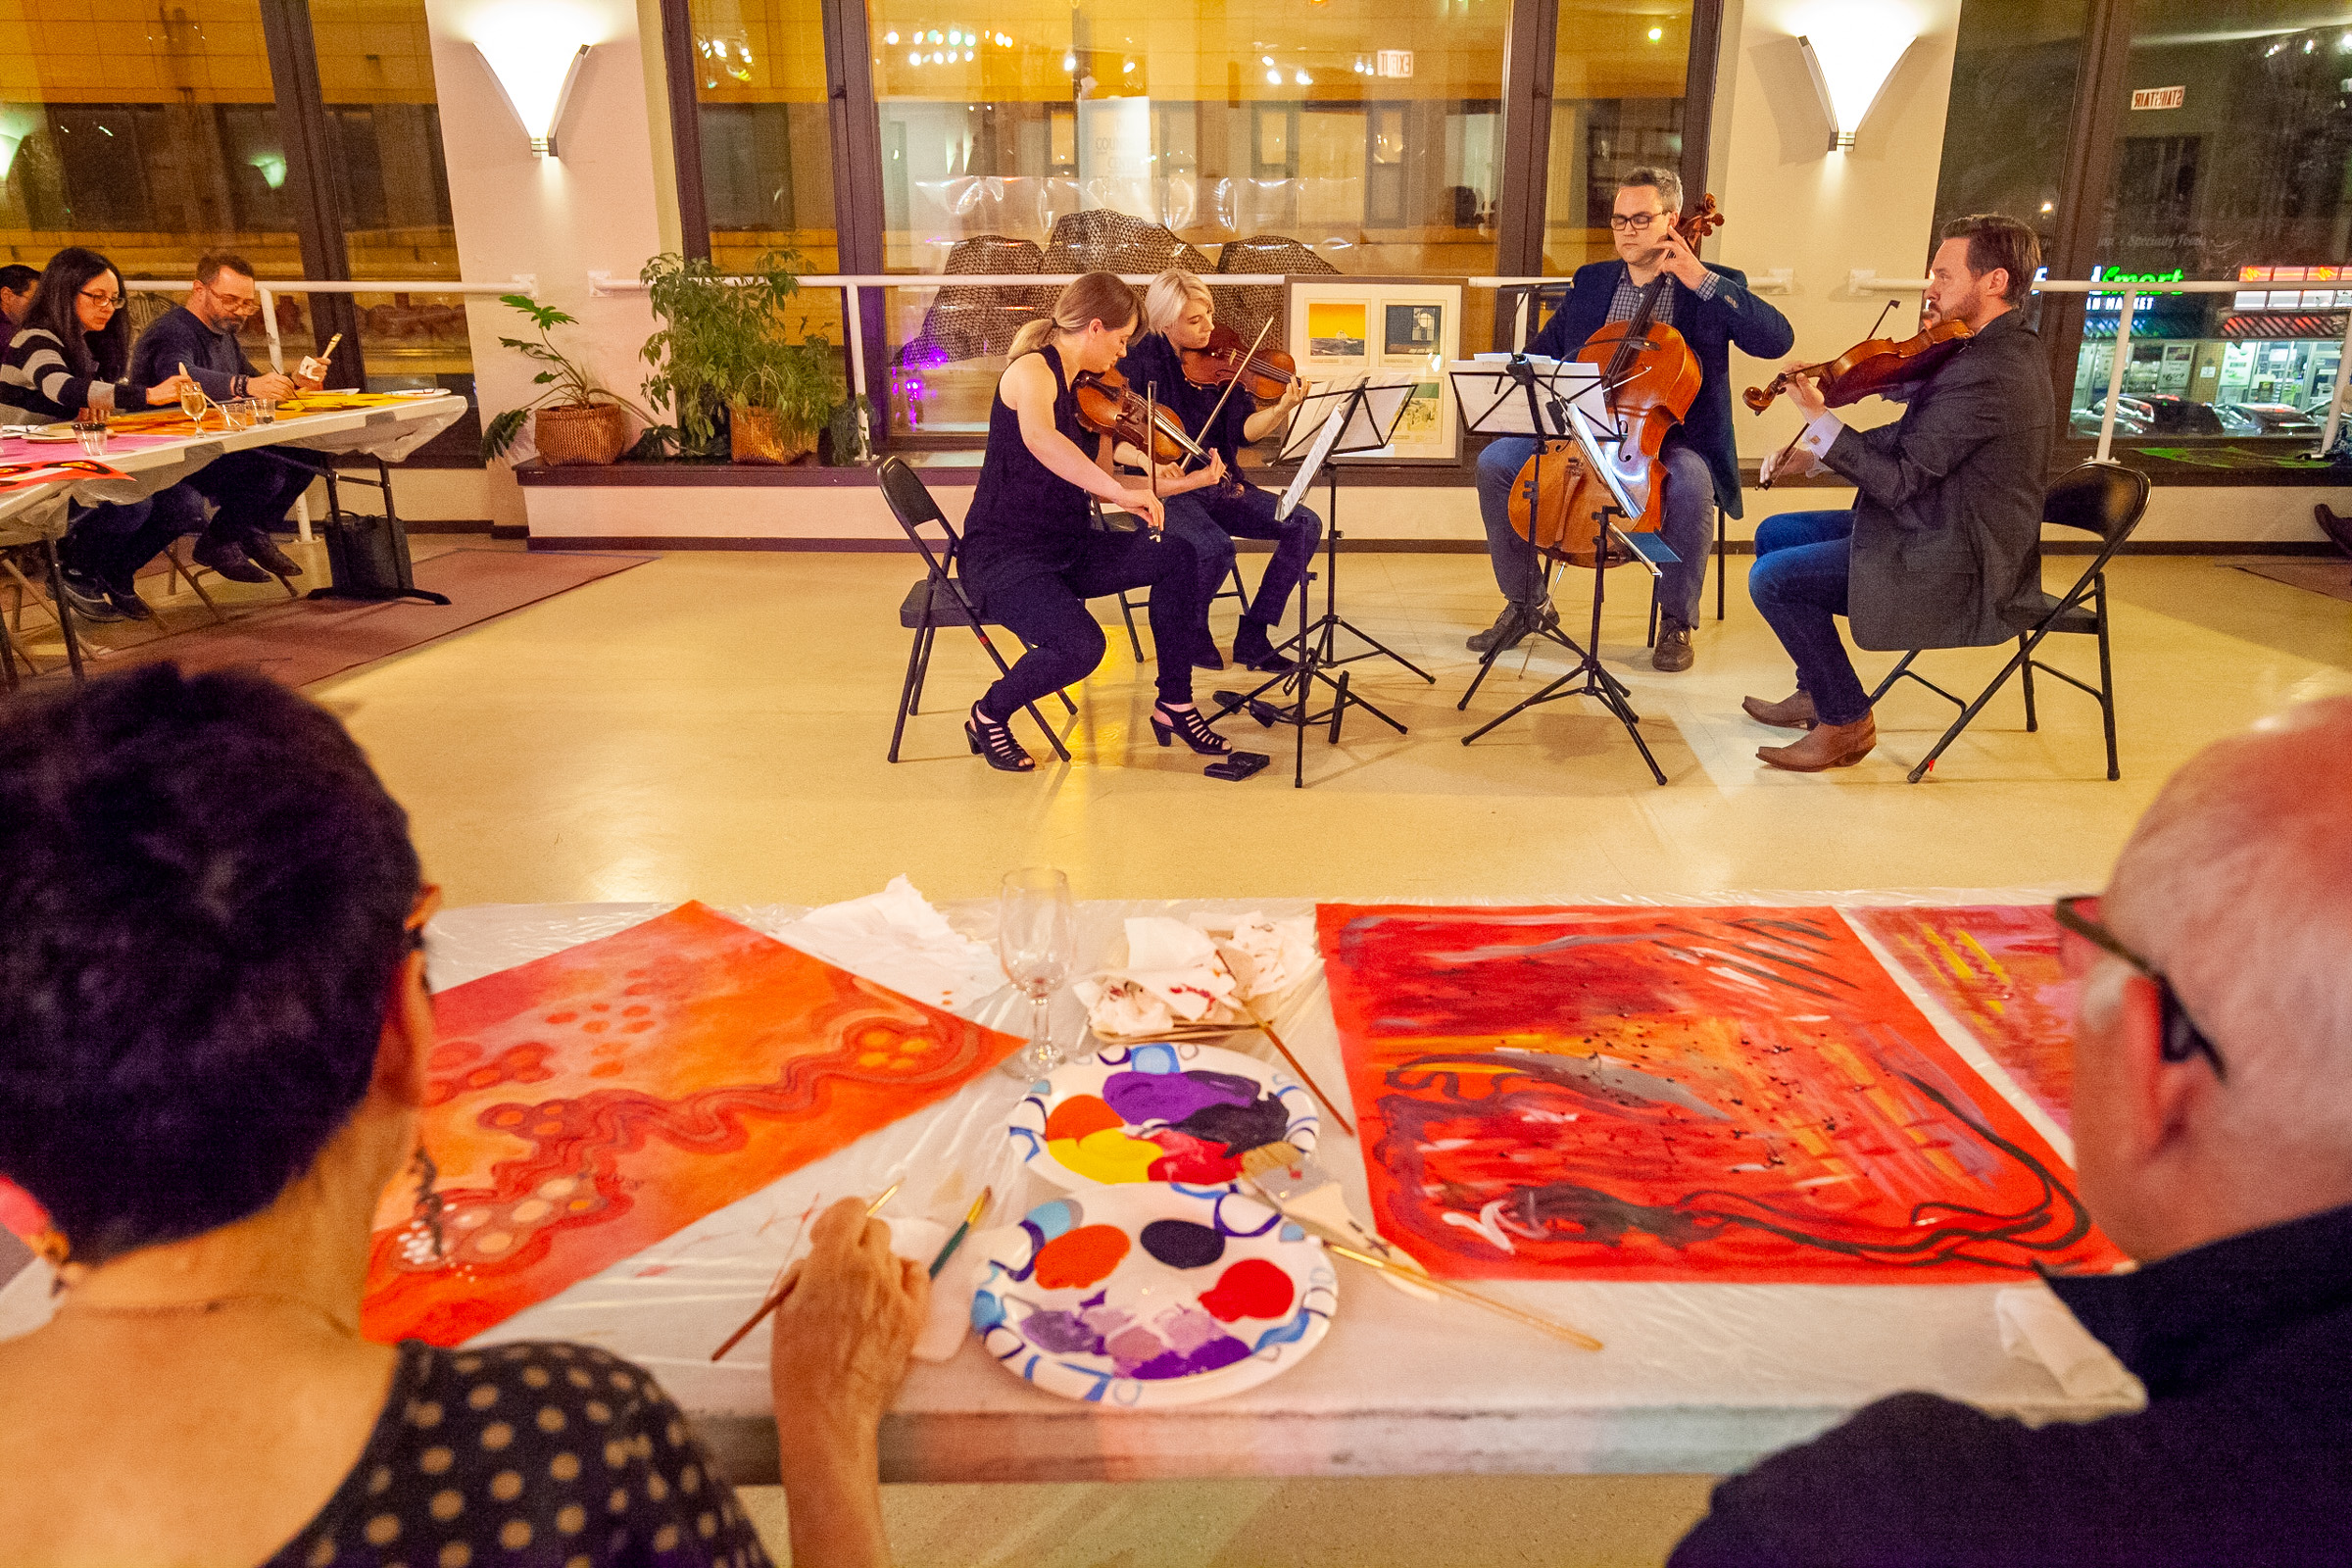 Painting to a live soundtrack at 'Paint Your Feelings' in 2018  (photo by Daniel Kullman)